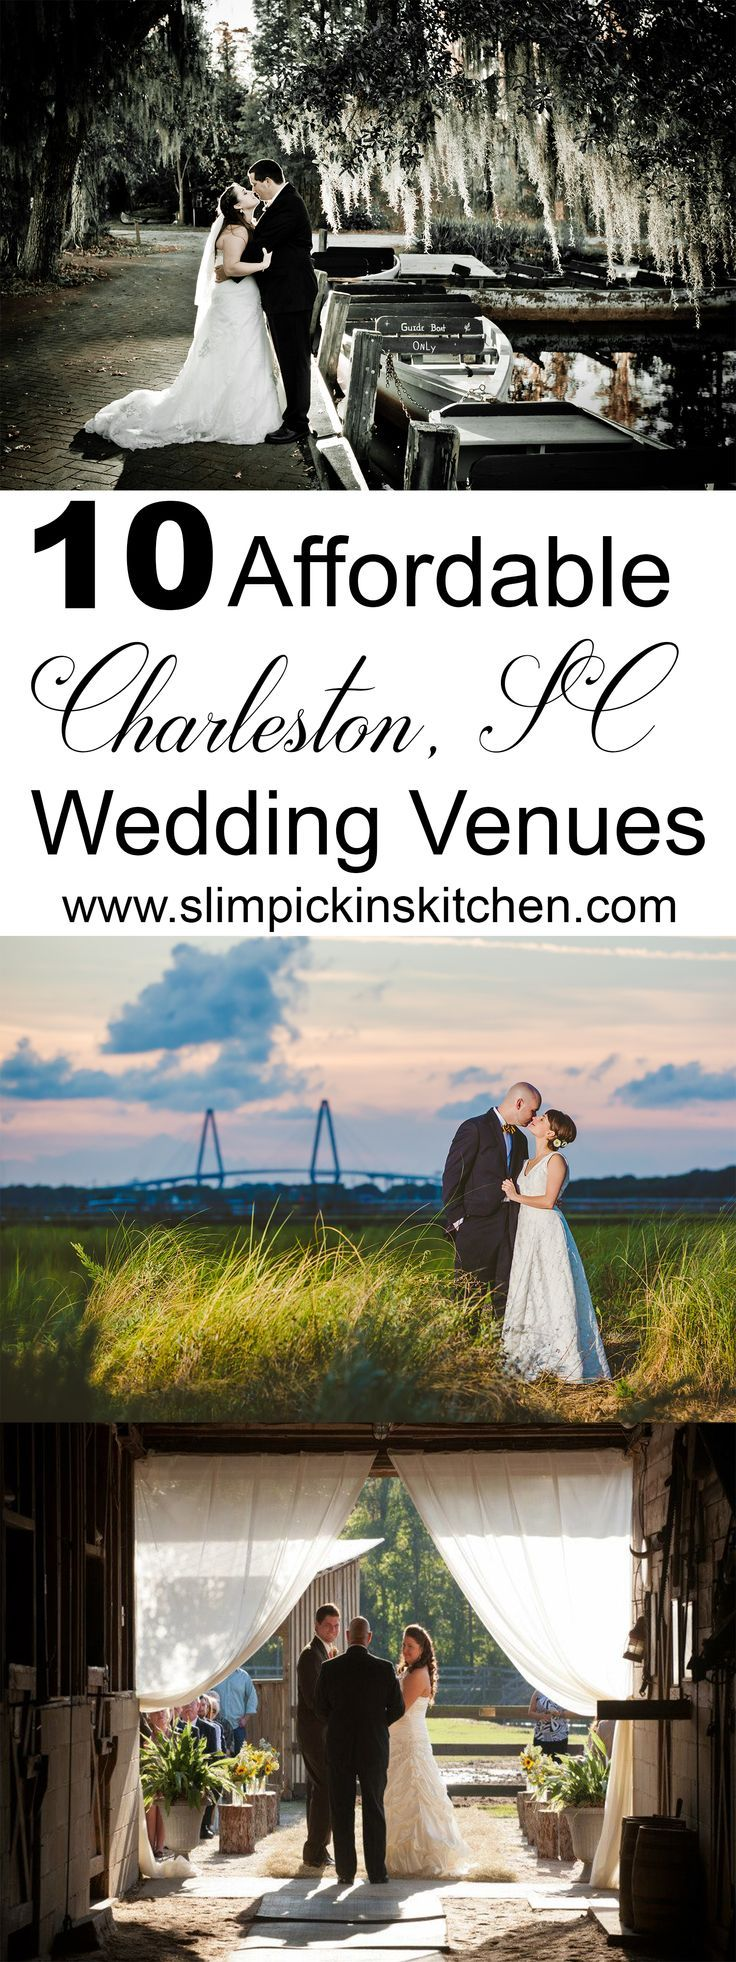 Affordable Charleston Wedding Venues for Brides on a Budget.Charleston, SC-A comprehensive list of affordable, inexpensive Charleston wedding venues and Charleston wedding inspiration where you can have your wedding and your cake...and eat it too. Photos in the Pin by Valerie & Co. Photographers and Scott Henderson Photography.